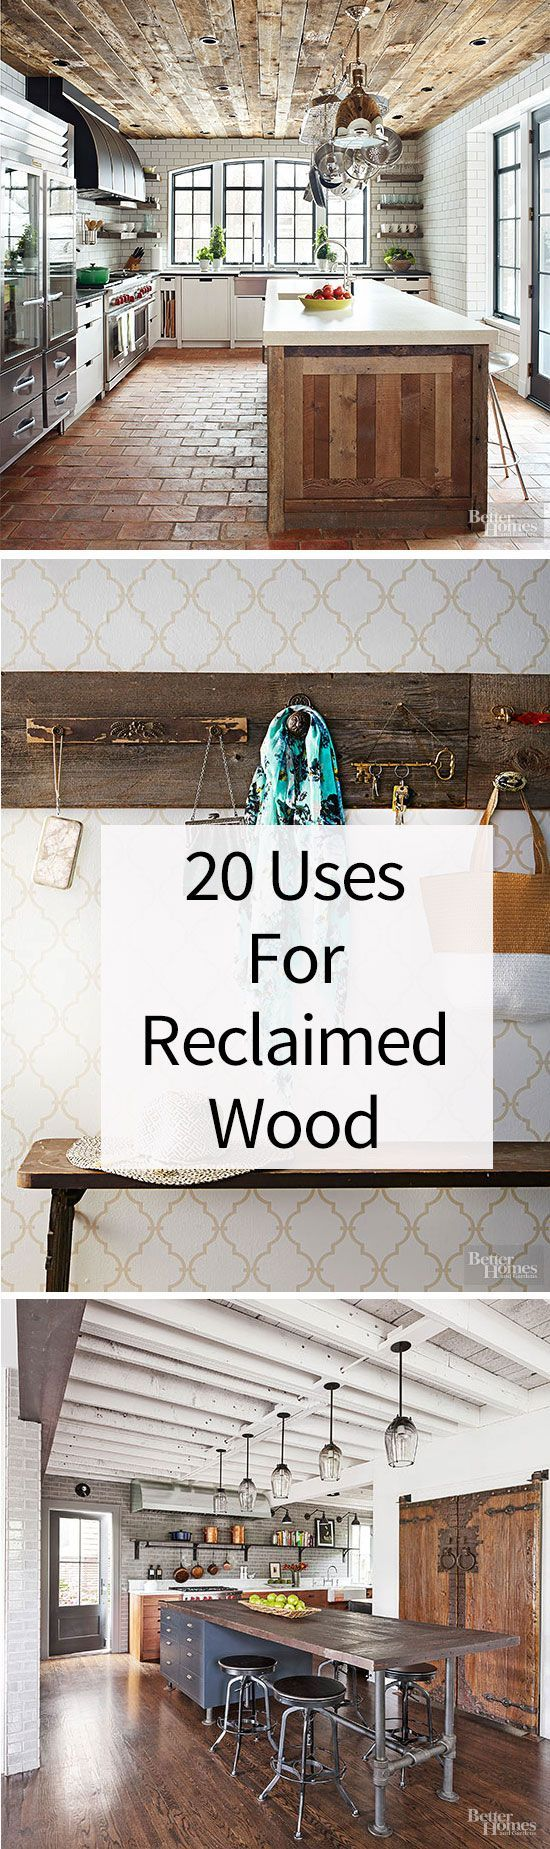 20 brilliant uses for reclaimed wood wood projects for Reclaimed wood dc